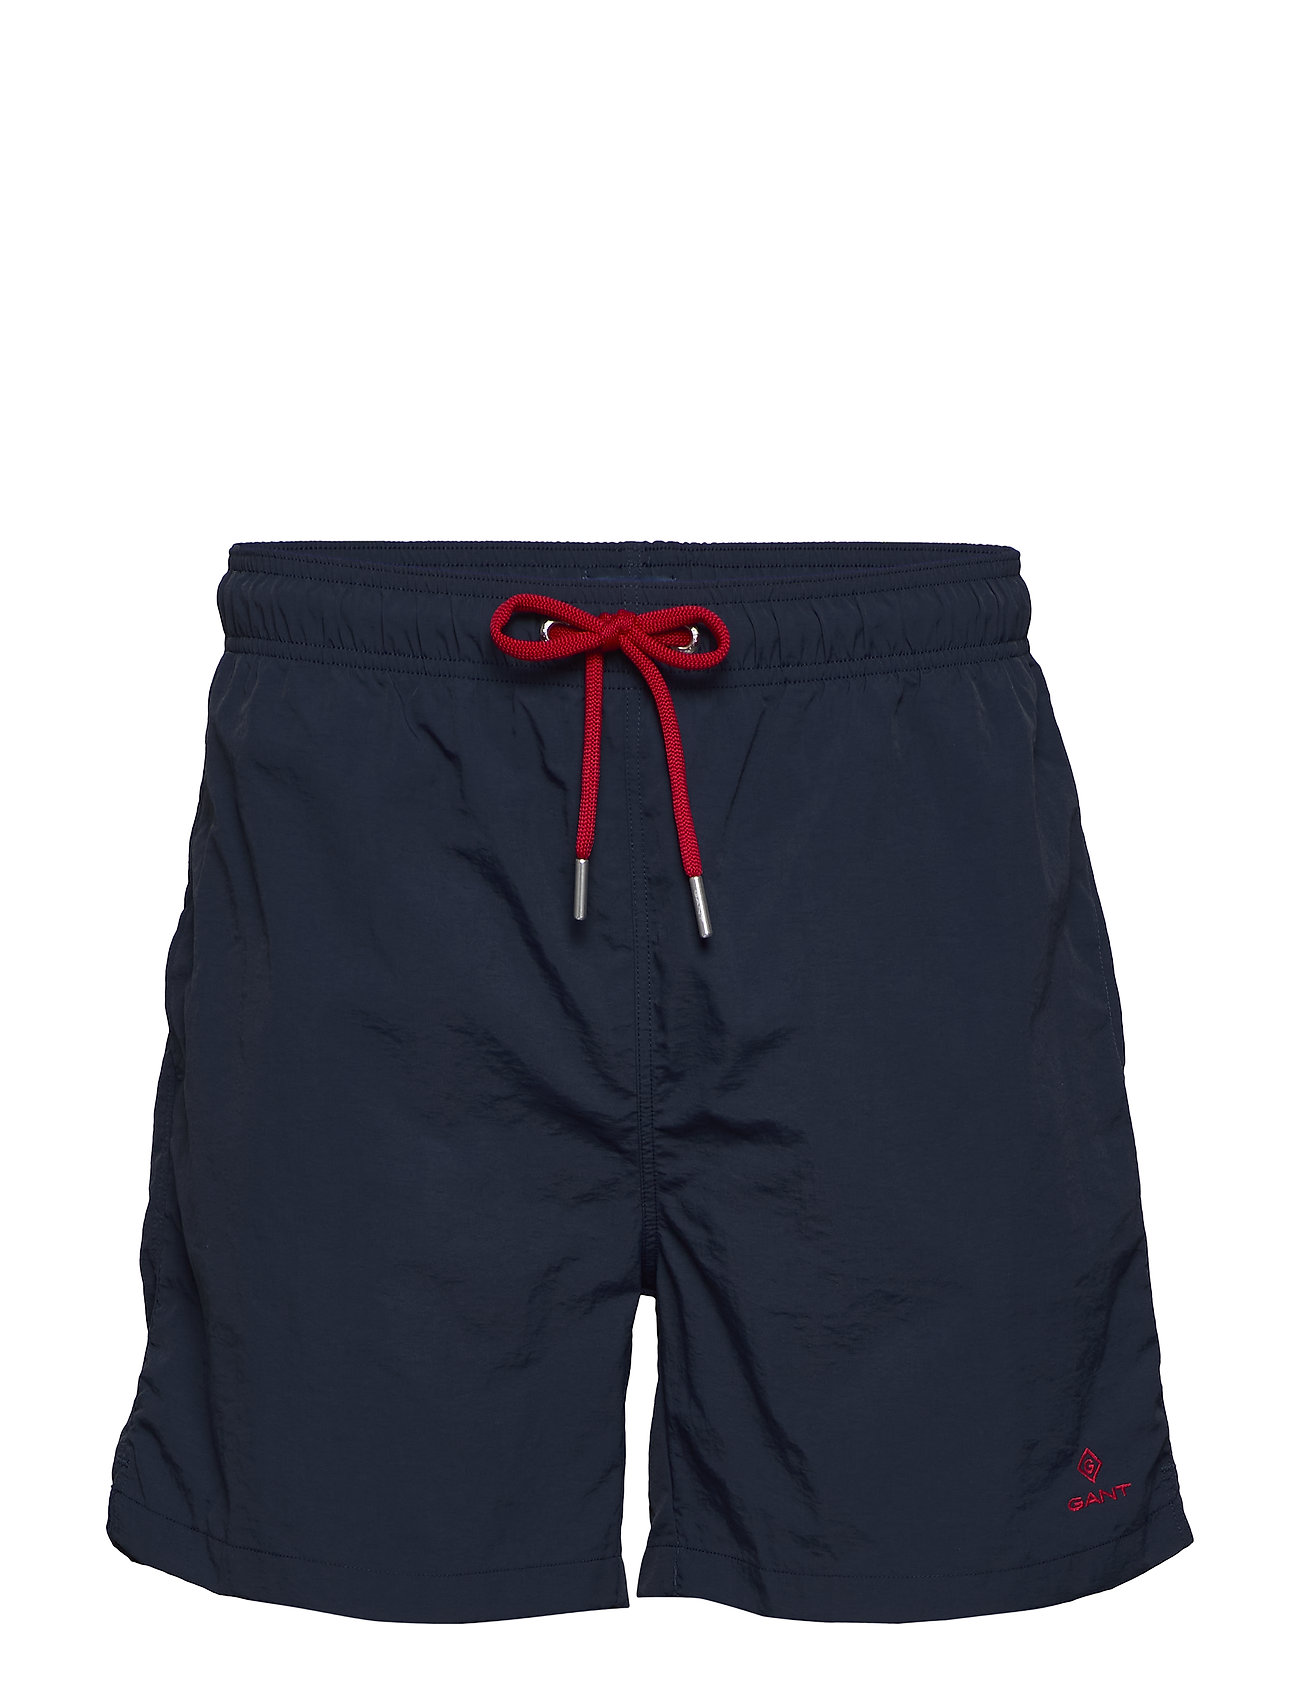 Gant BASIC SWIM SHORTS CLASSIC FIT - MARINE